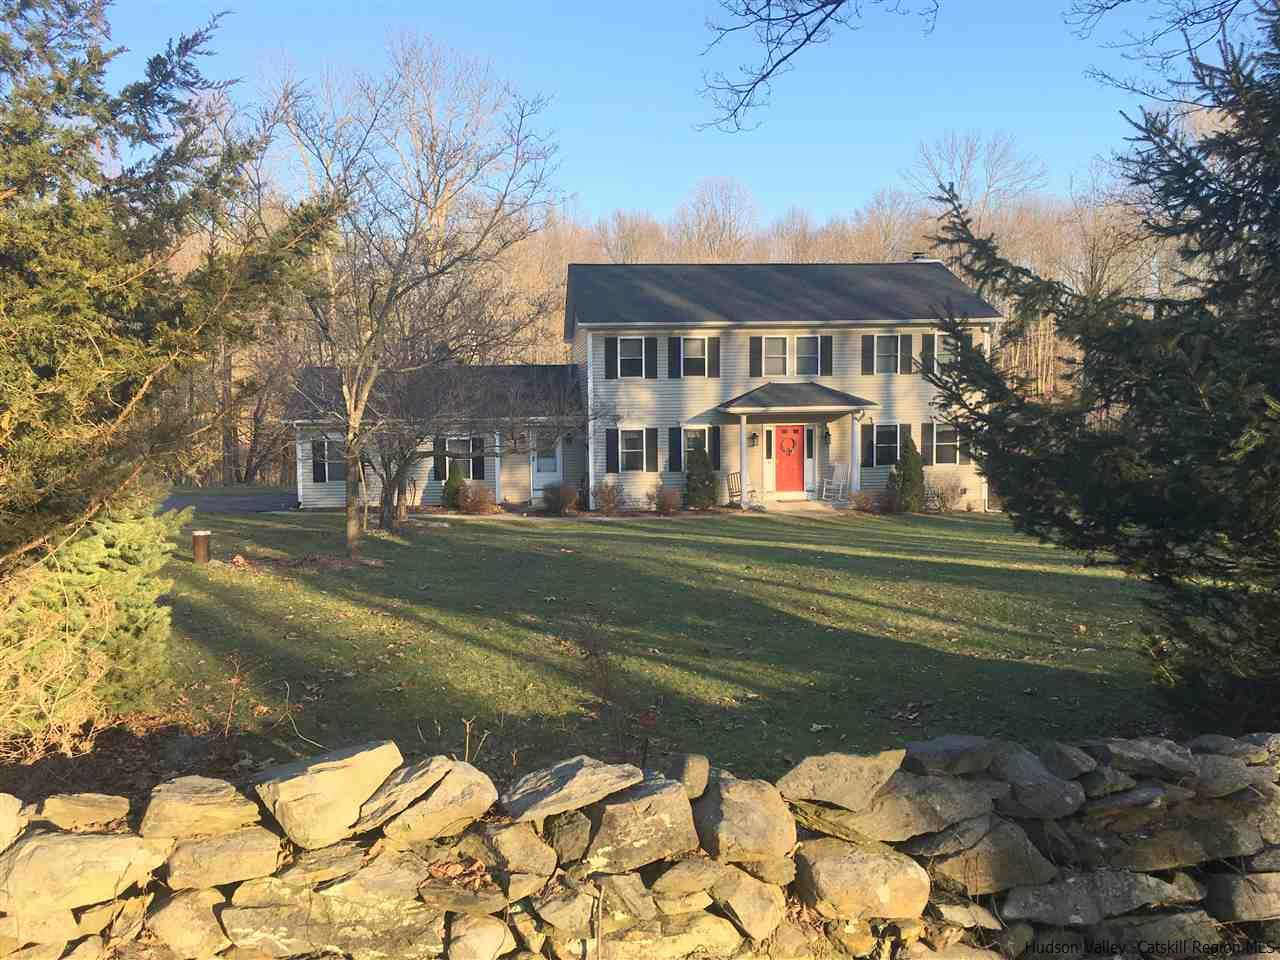 Single Family Home for Sale at 533 Ackert Hook Road 533 Ackert Hook Road Rhinebeck, New York 12572 United States